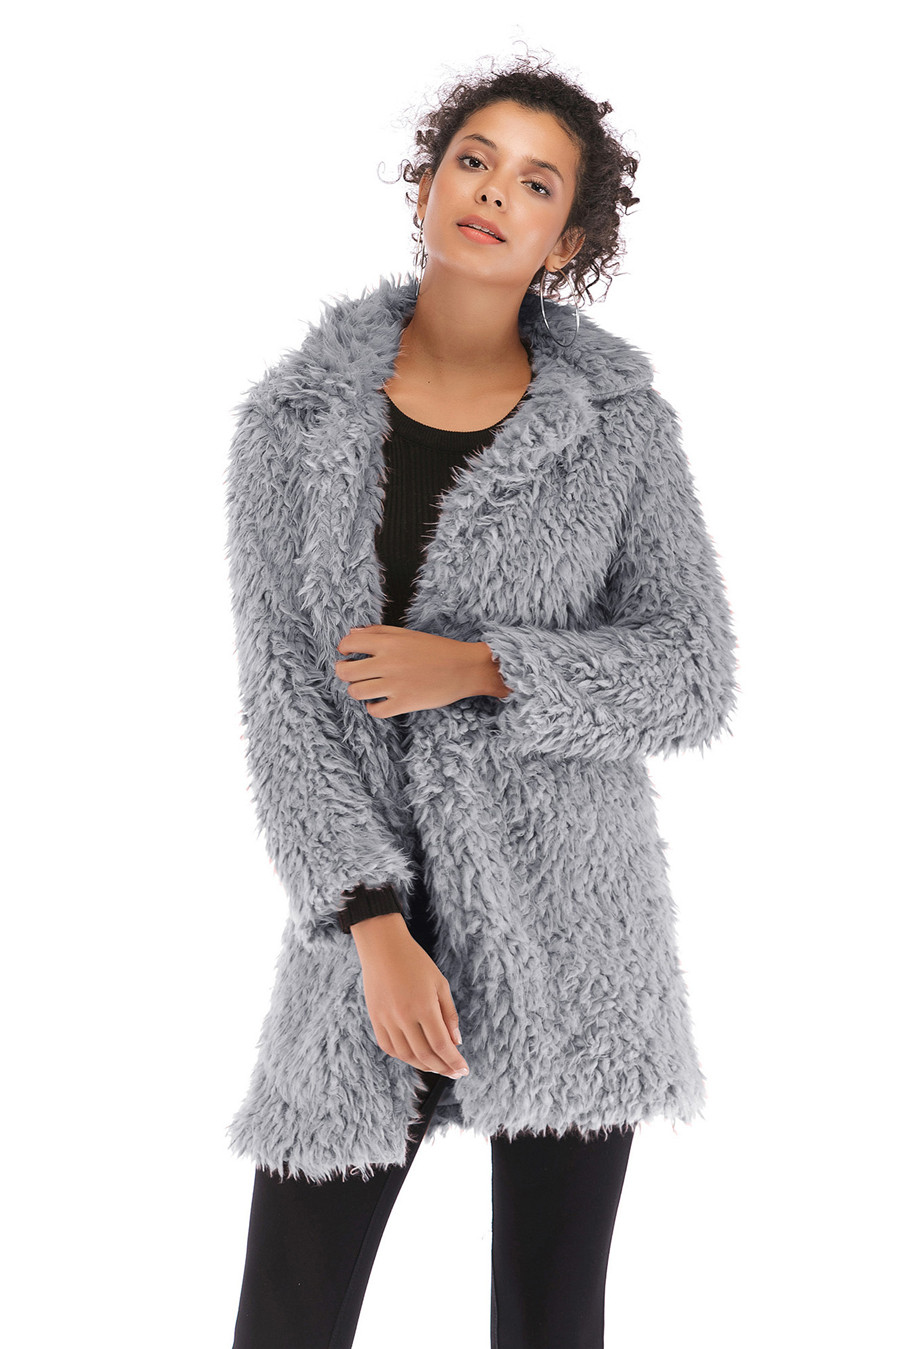 Gladiolus 2018 Women Autumn Winter Coat Turn-Down Collar Long Sleeve Covered Button Long Warm Shaggy Faux Fur Coat Women Jackets (18)